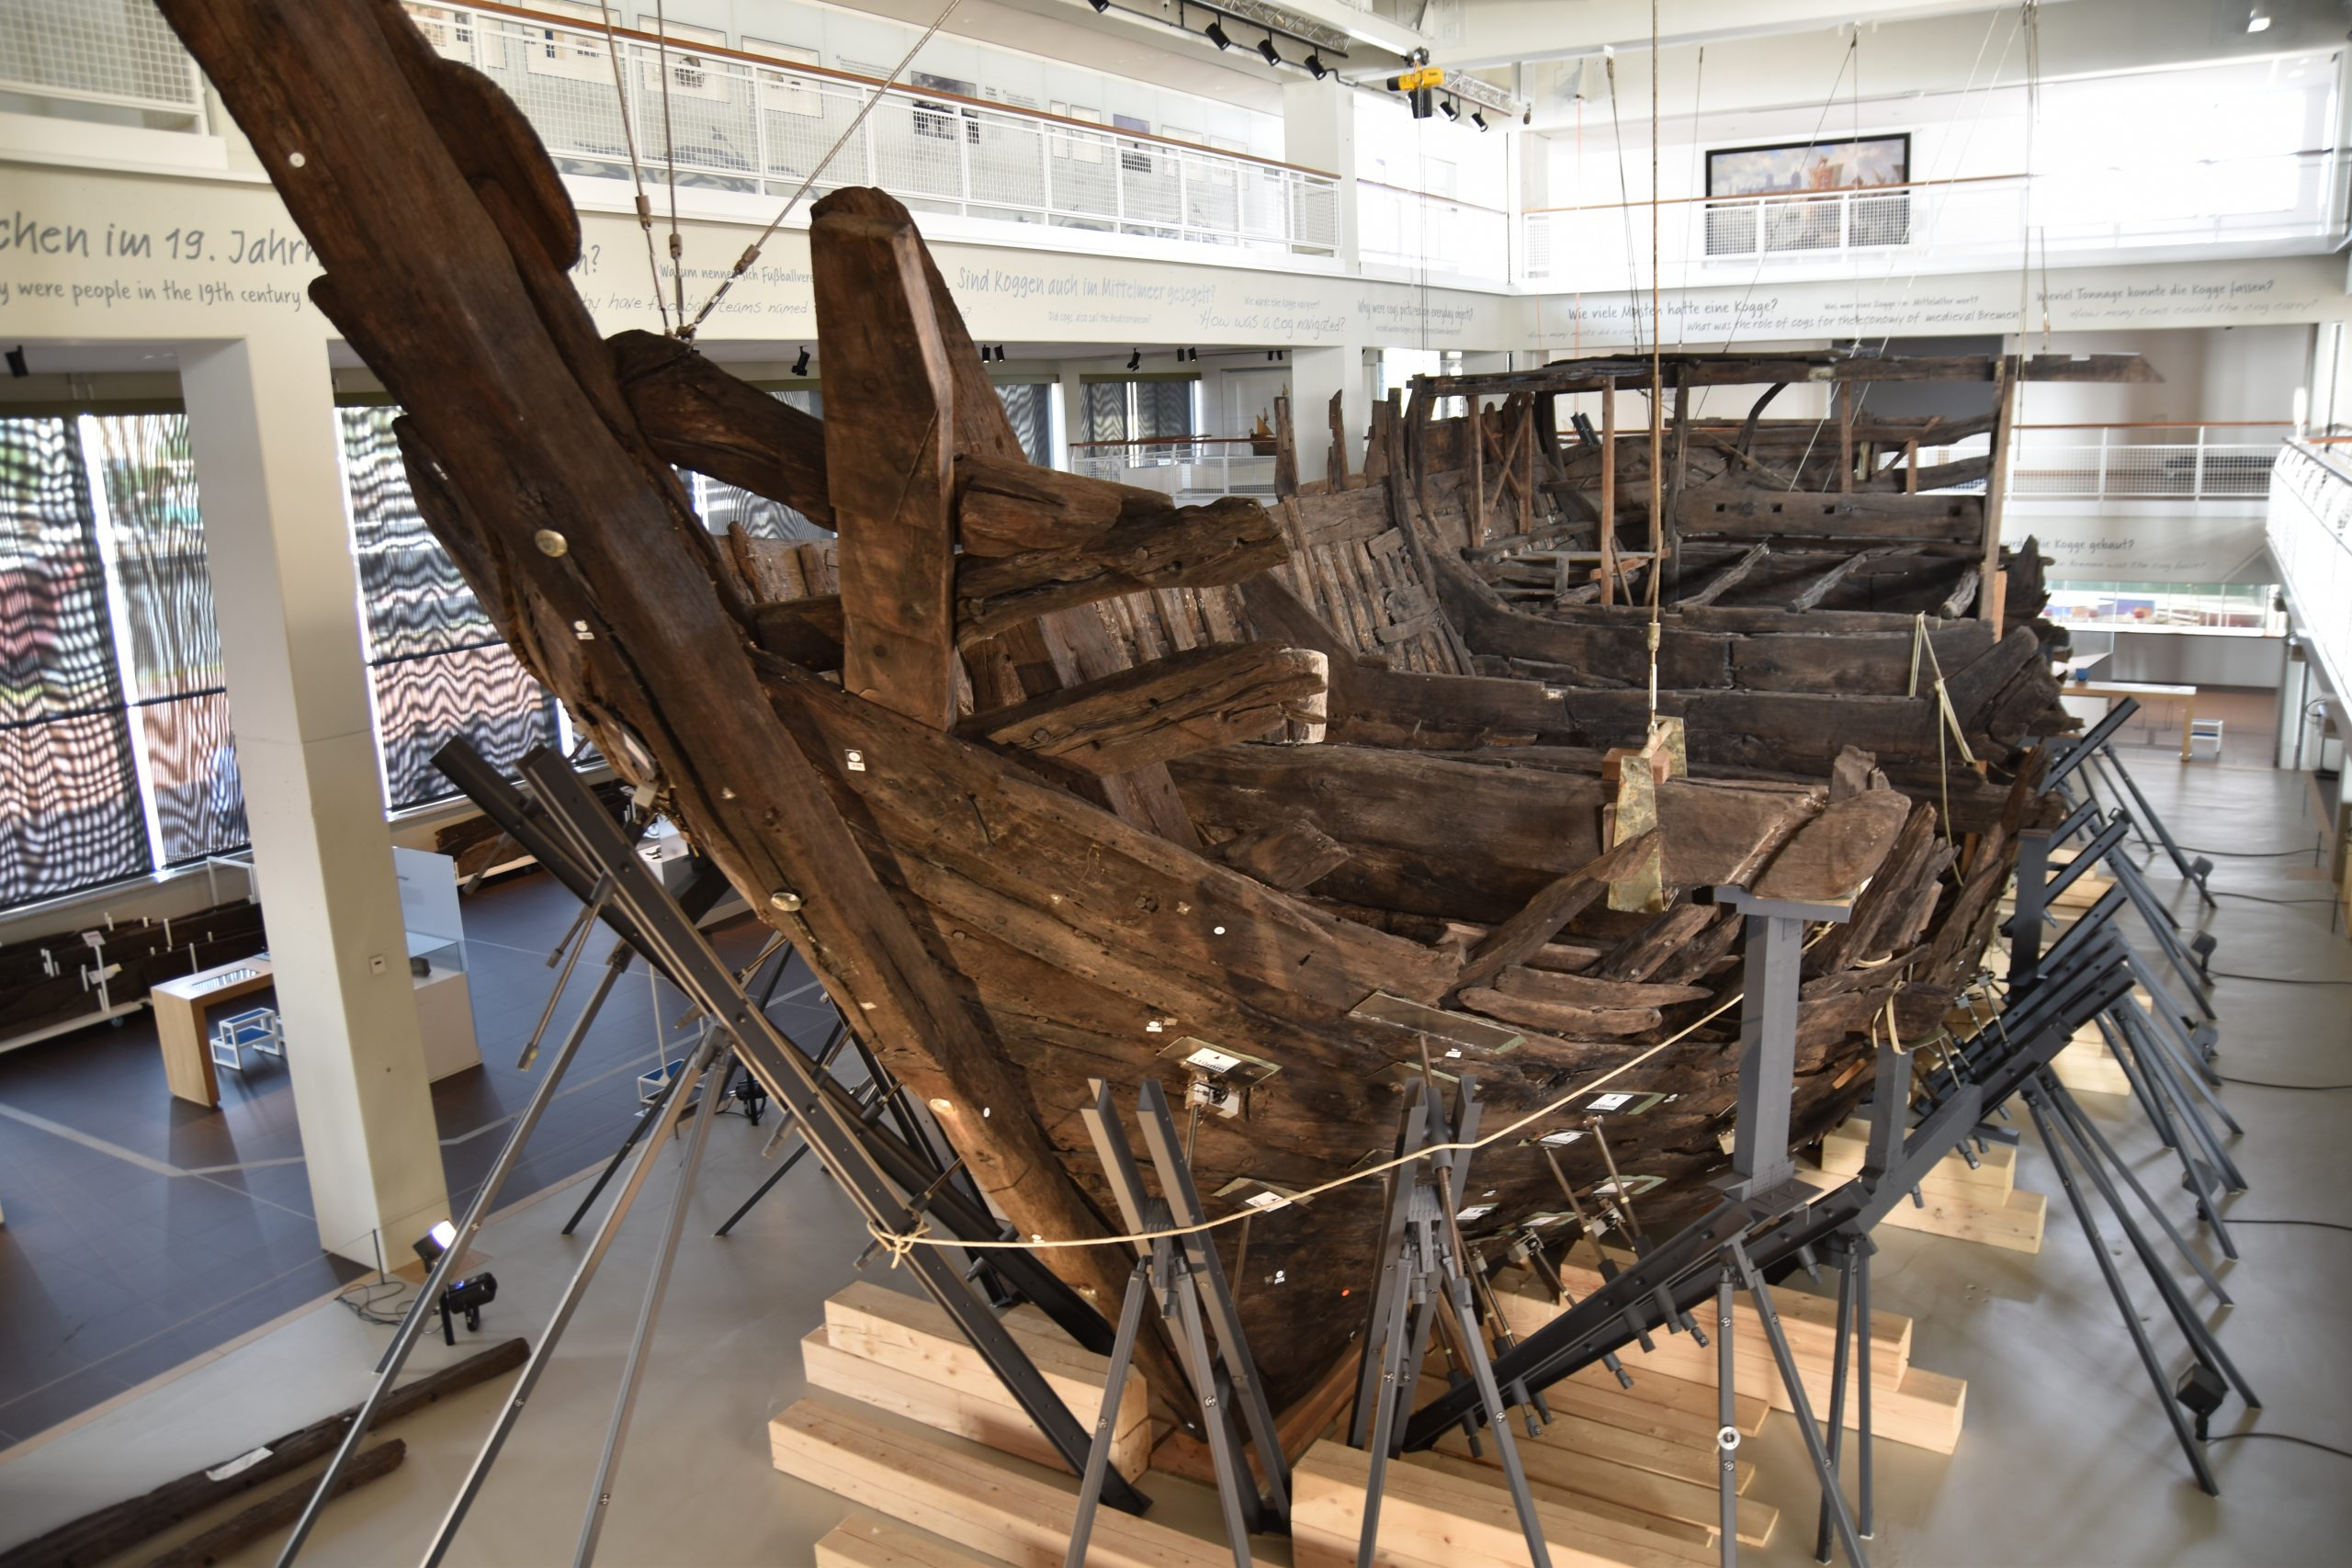 The shell of a ship in the German Maritime Museum.